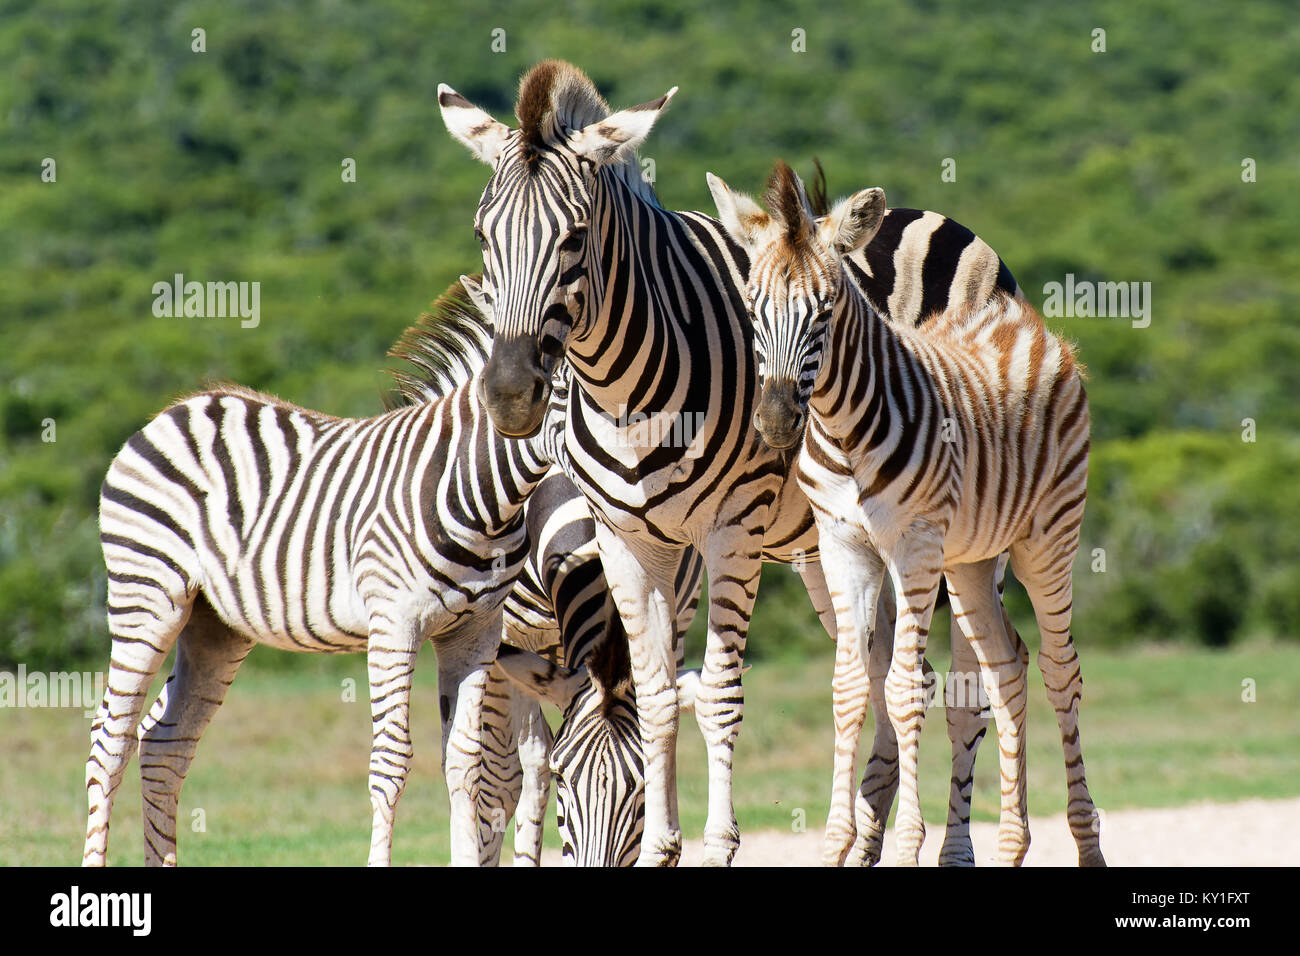 Color portrait of a zebra group in bright sunshine taken in South Africa with natural background on a sunny day Stock Photo